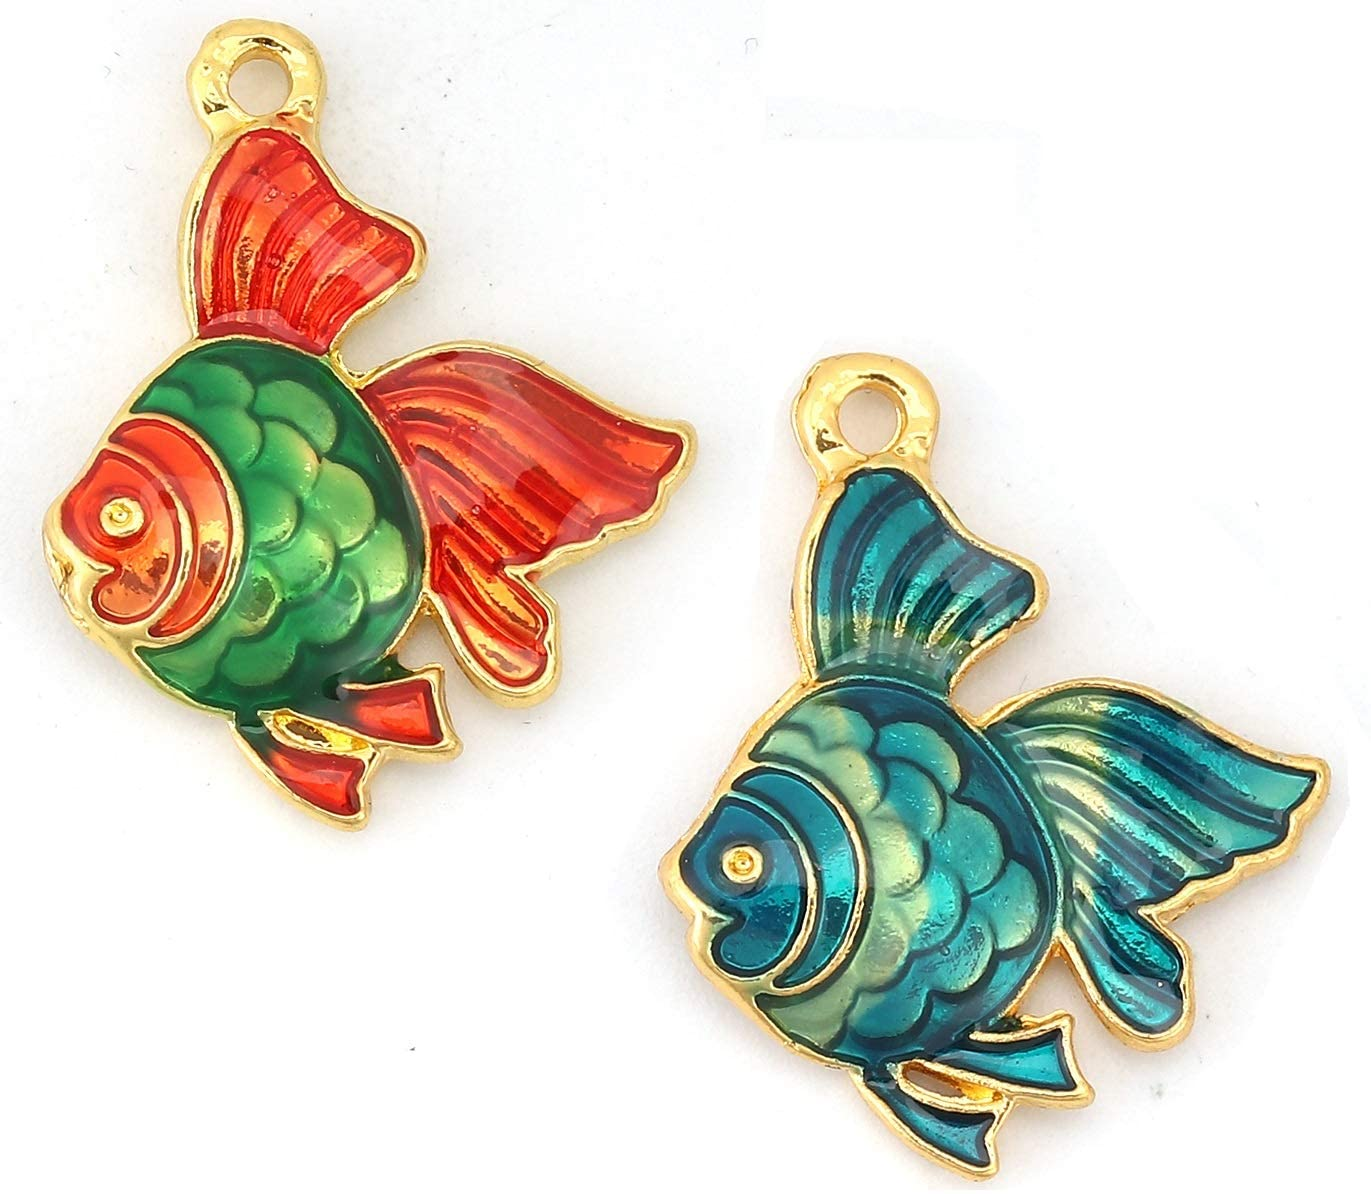 Ocean Fish or Goldfish Enamel Charms, 10 Pack, Gold Tone 3/4 Inch (Set B)